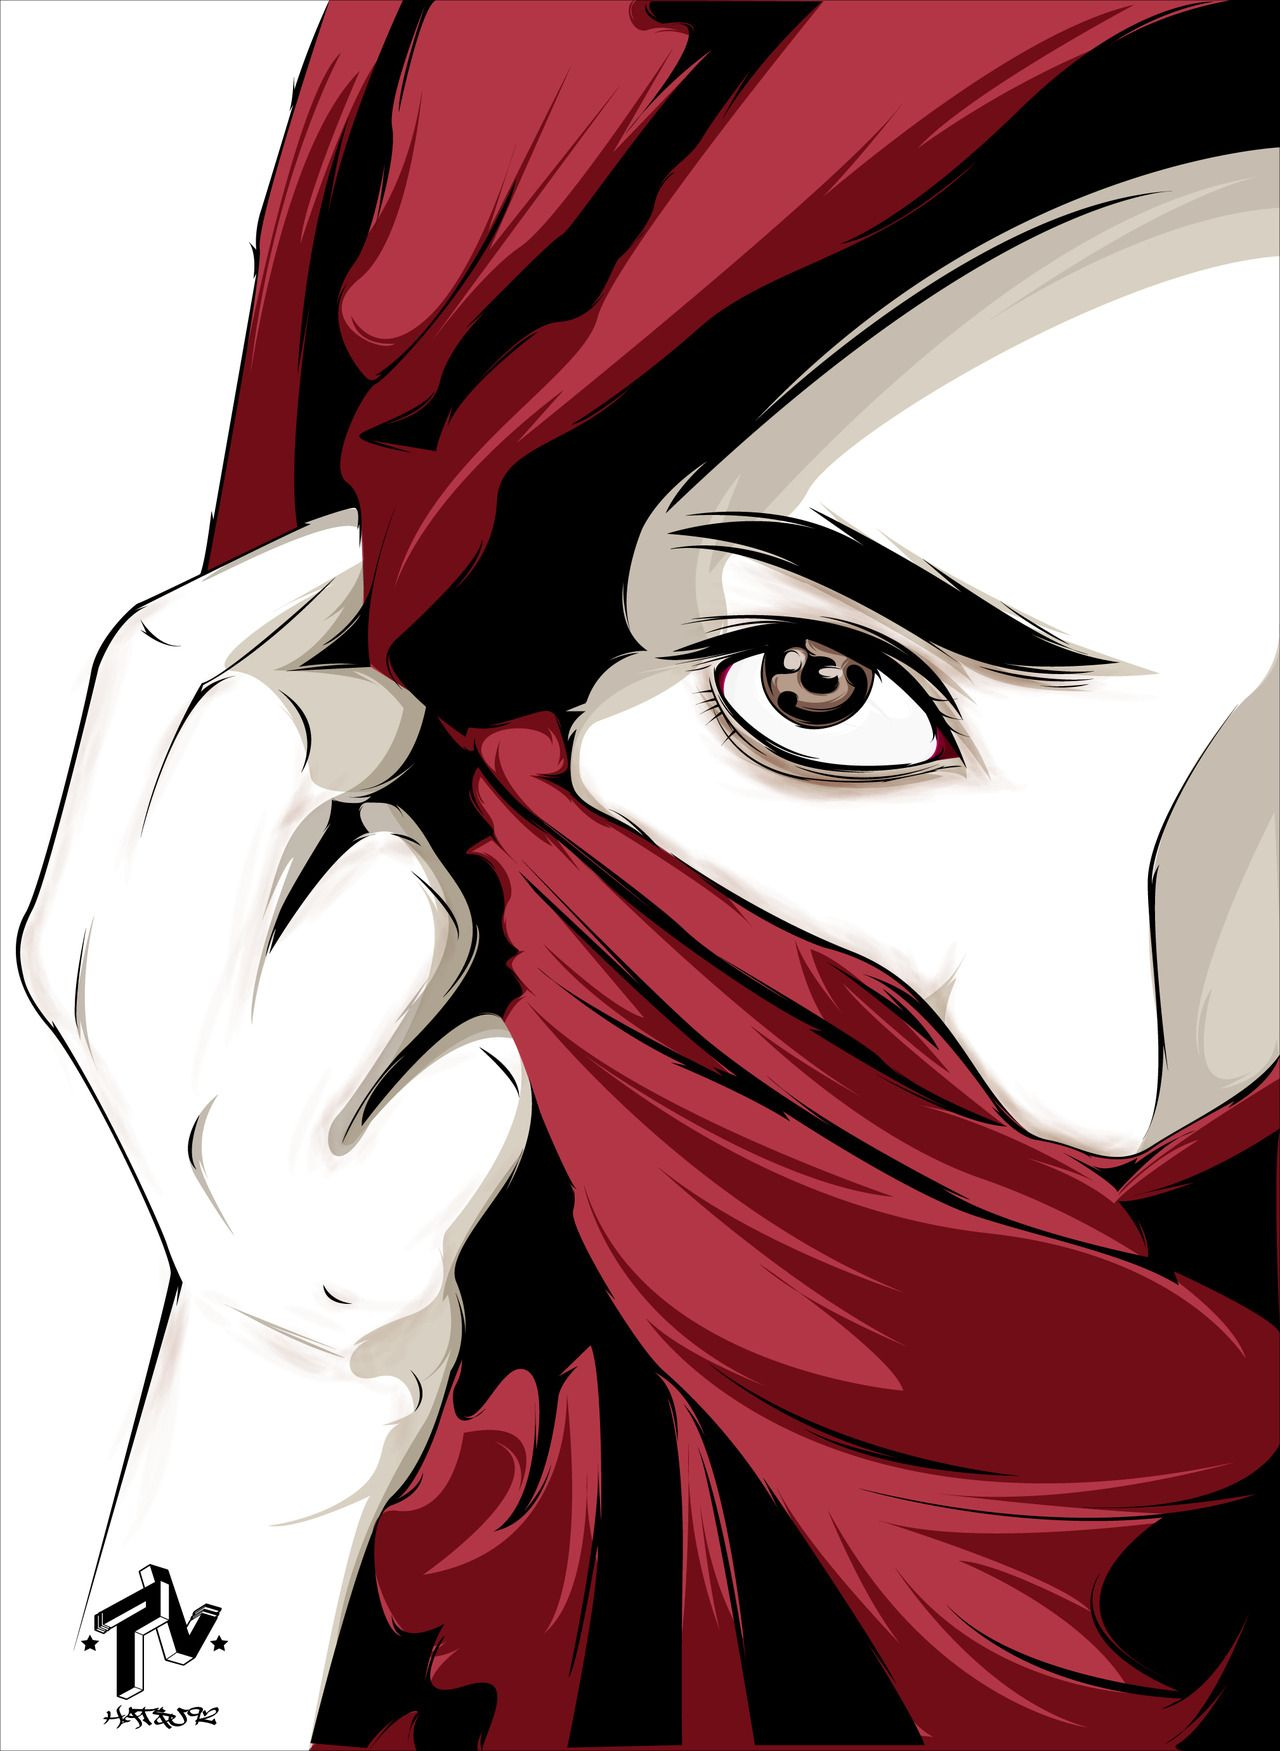 hijab arabic girl manual trace using mouse and illustrator cs5support young boy designer